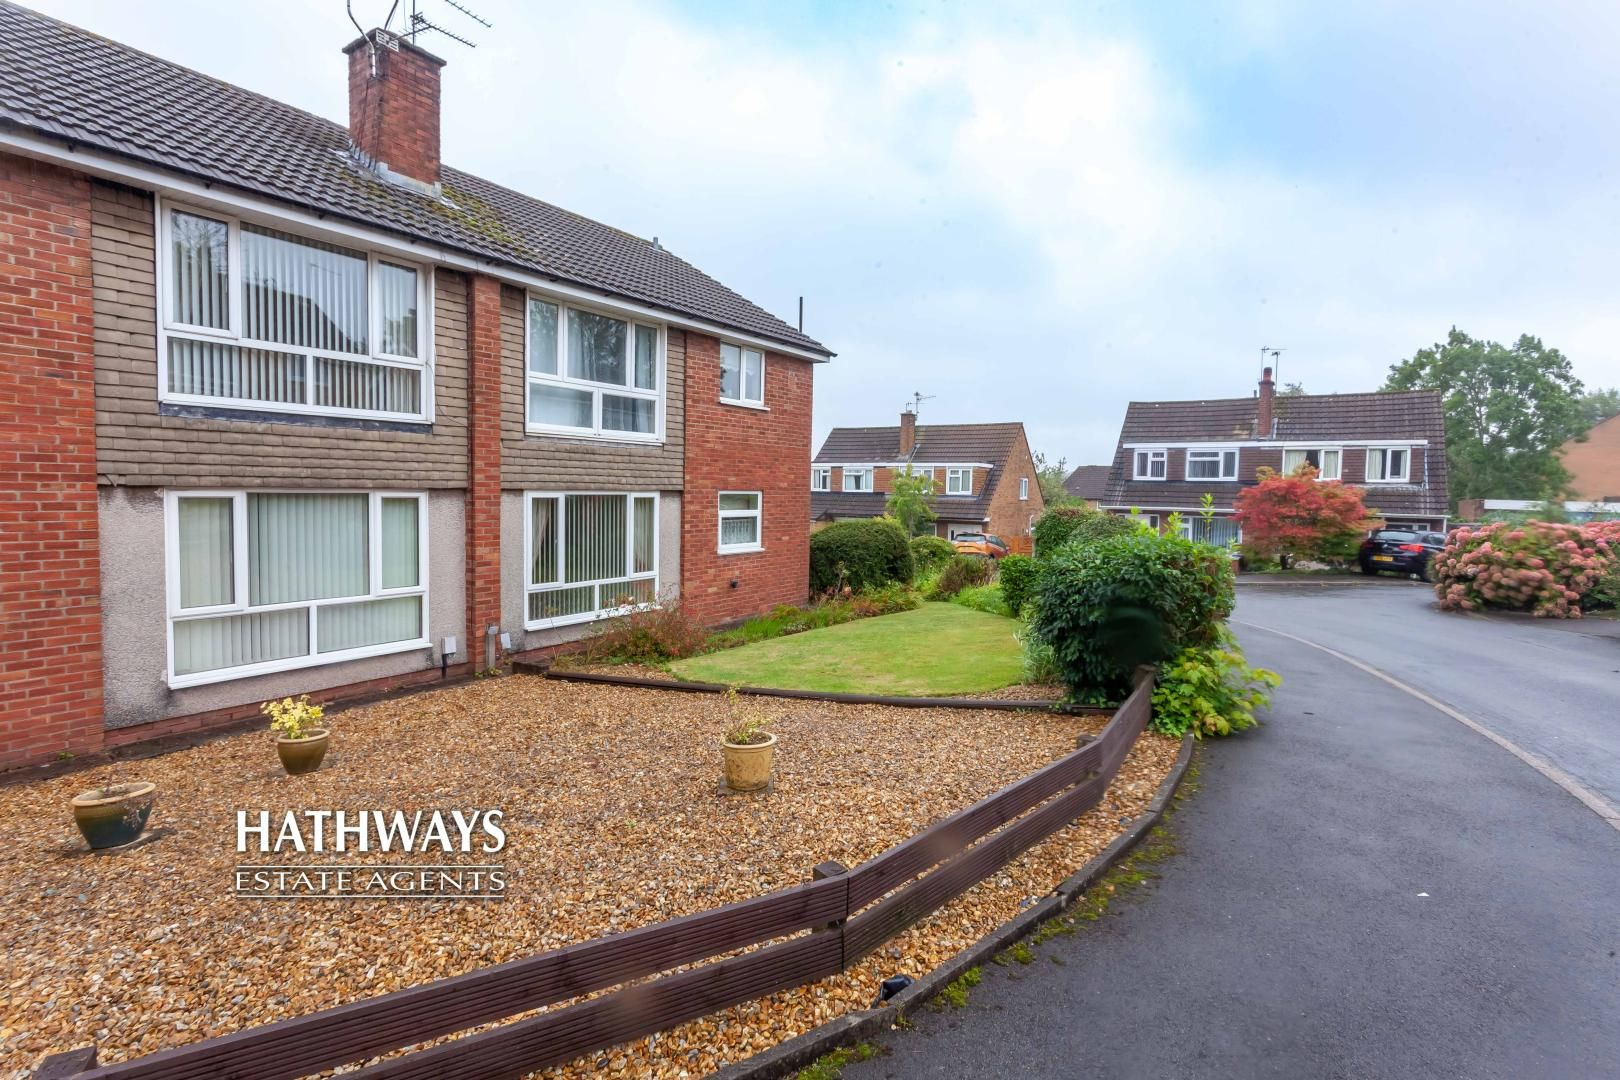 2 bed flat for sale in Aspen Way, NP20